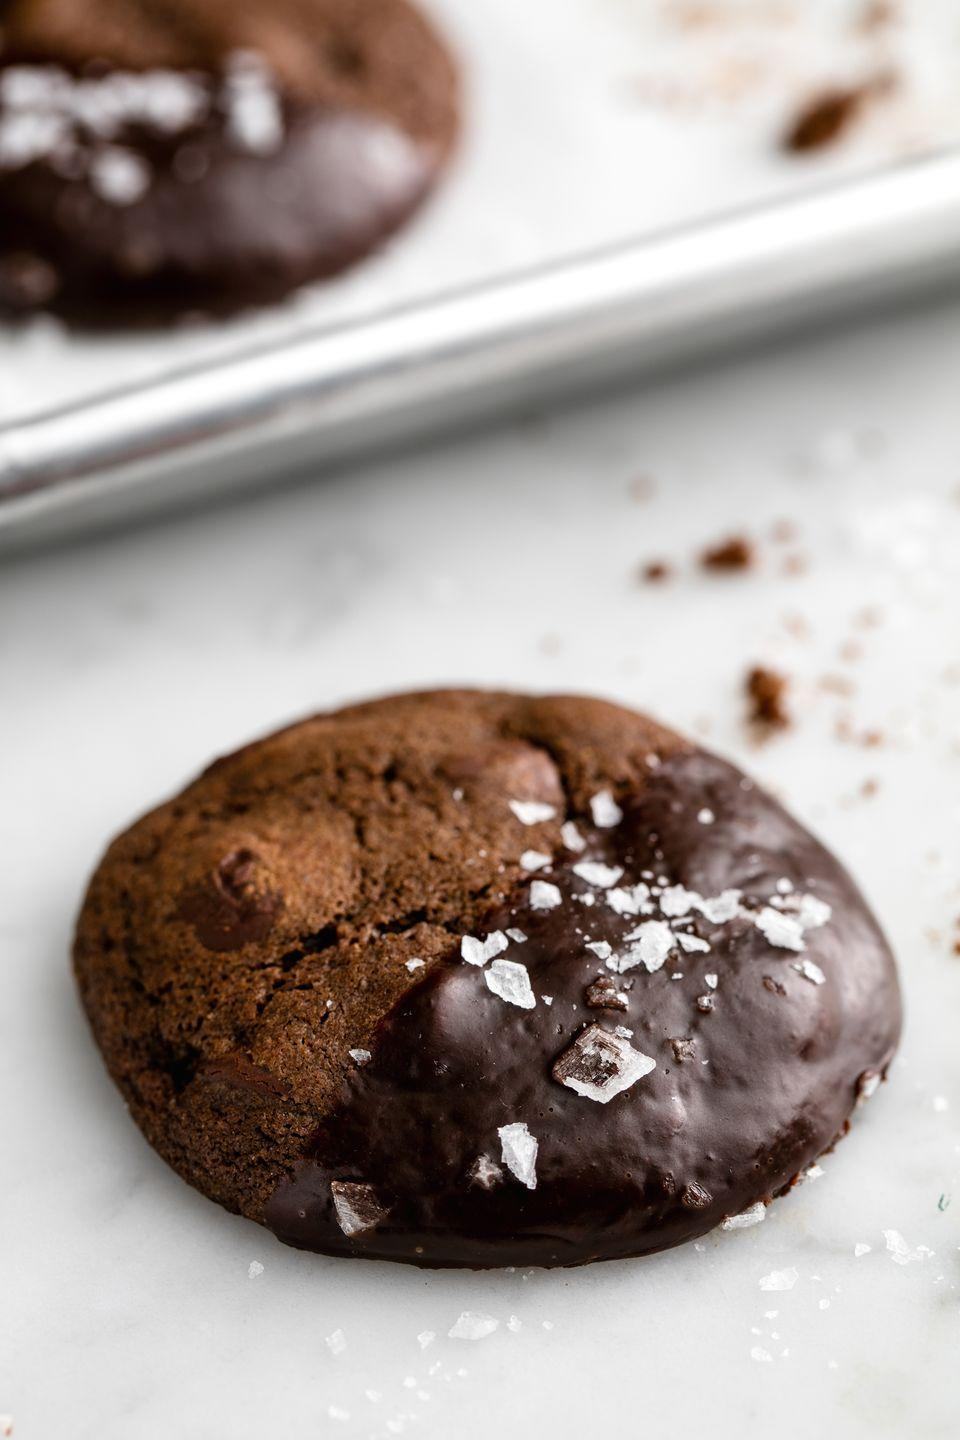 "<p>You've been warned.</p><p>Get the recipe from <a href=""https://www.delish.com/cooking/recipe-ideas/recipes/a50447/death-by-chocolate-cookies-recipe/"" rel=""nofollow noopener"" target=""_blank"" data-ylk=""slk:Delish"" class=""link rapid-noclick-resp"">Delish</a>. </p>"